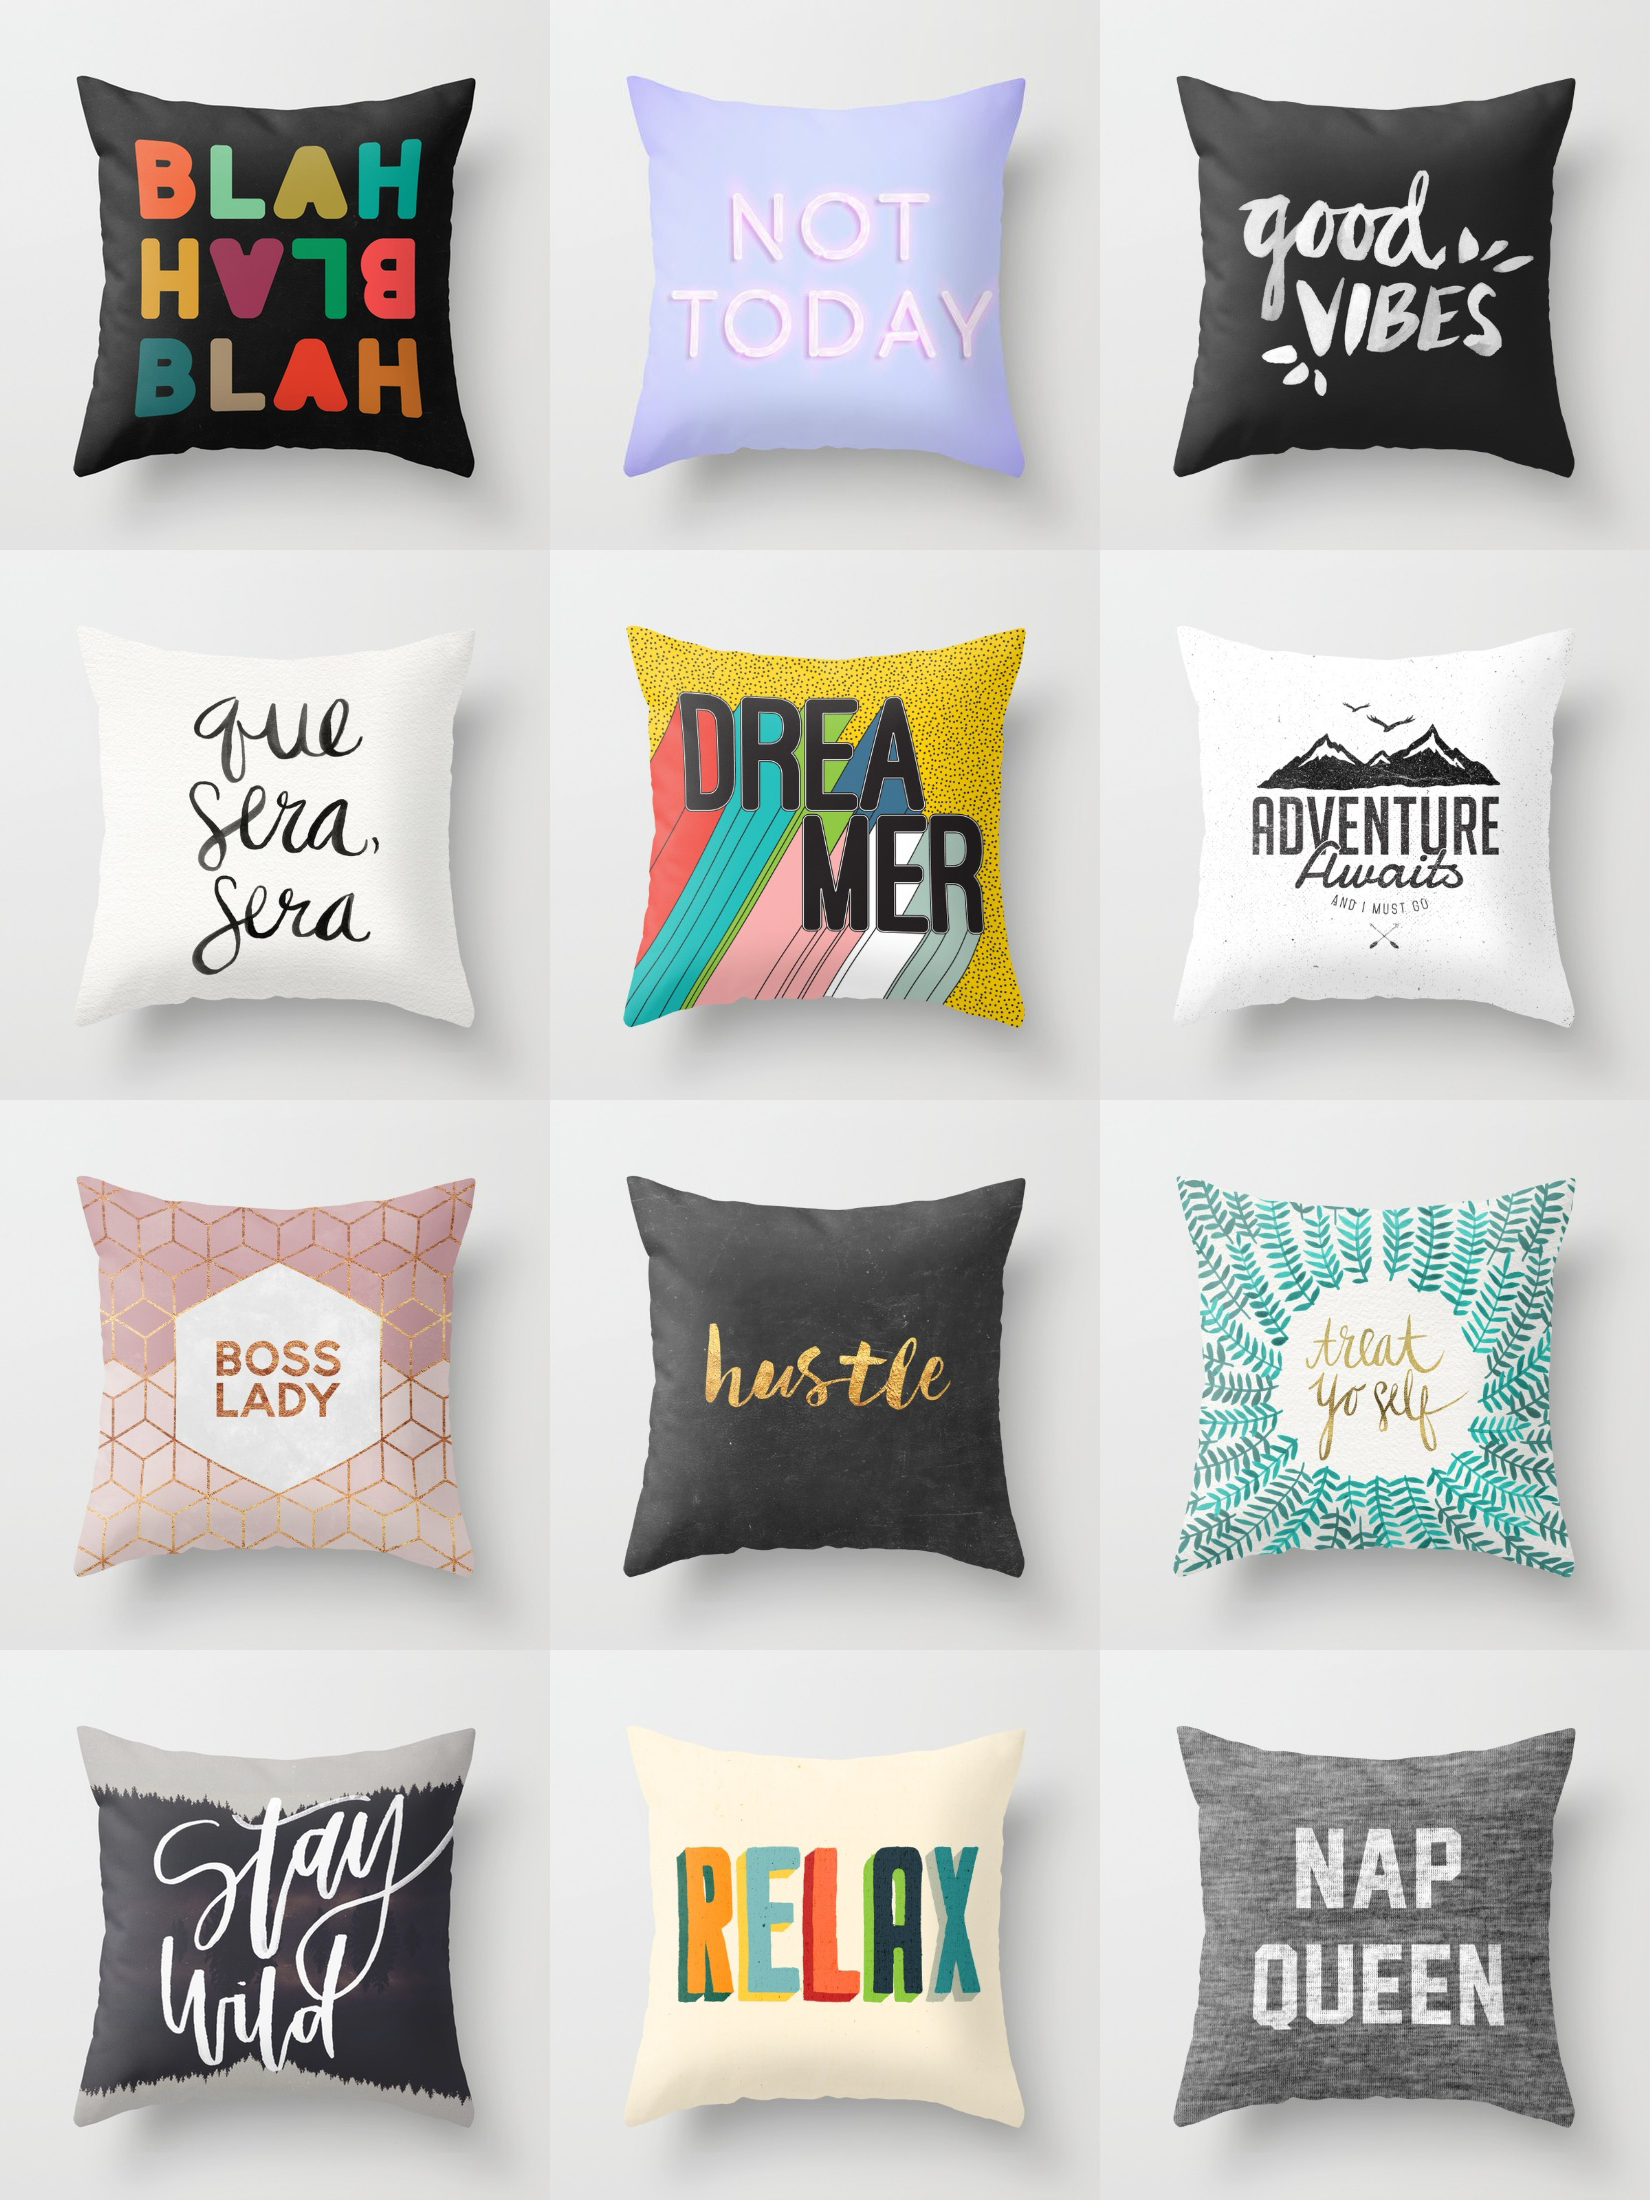 Shop Unique And Original Throw Pillows On Society6 Society6 Is Home To Hundreds Of Thousands Of Artists From Arou Pillows Decorative Diy Pillows Throw Pillows